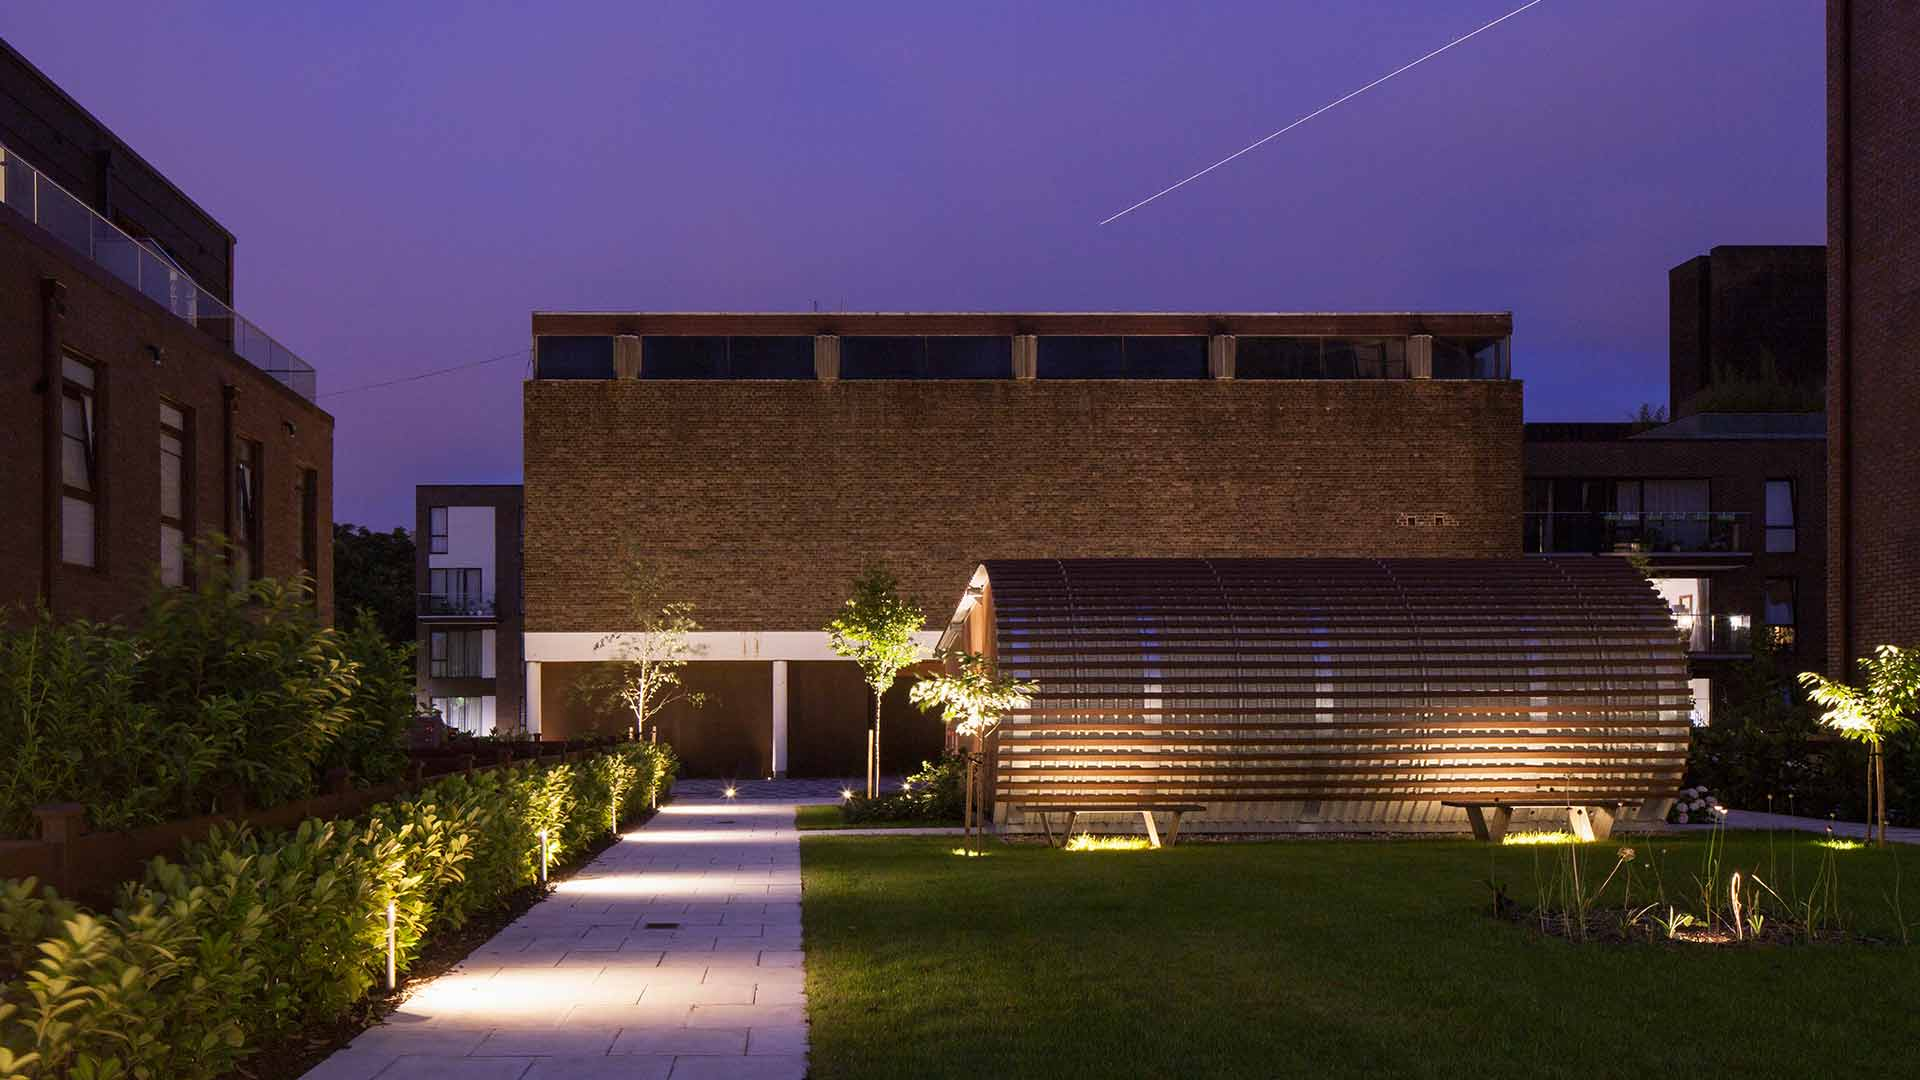 Architectural Lighting Design Listed Buildings Flats Exterior Landscape Nulty